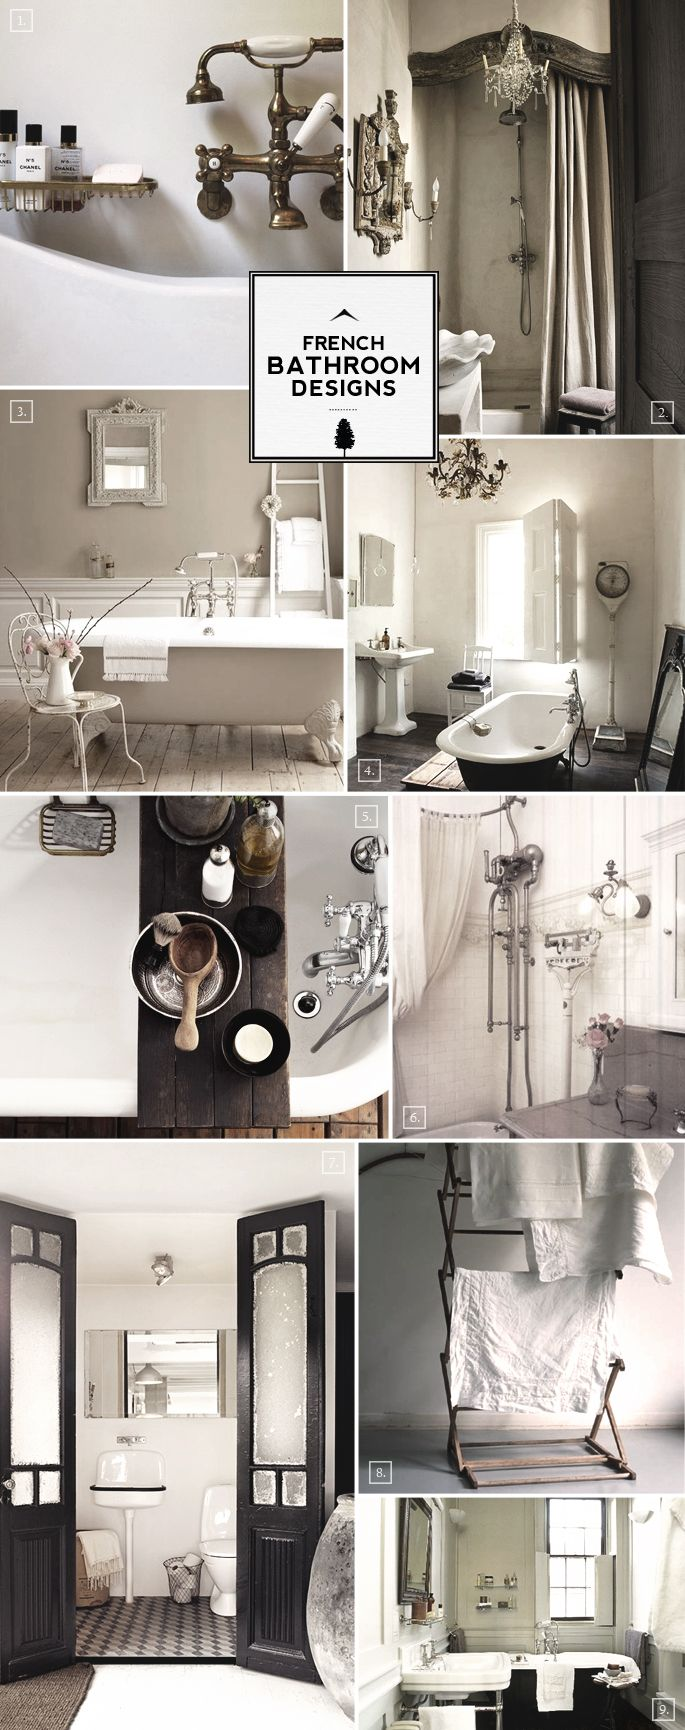 French Style Bathroom Decor and Designs